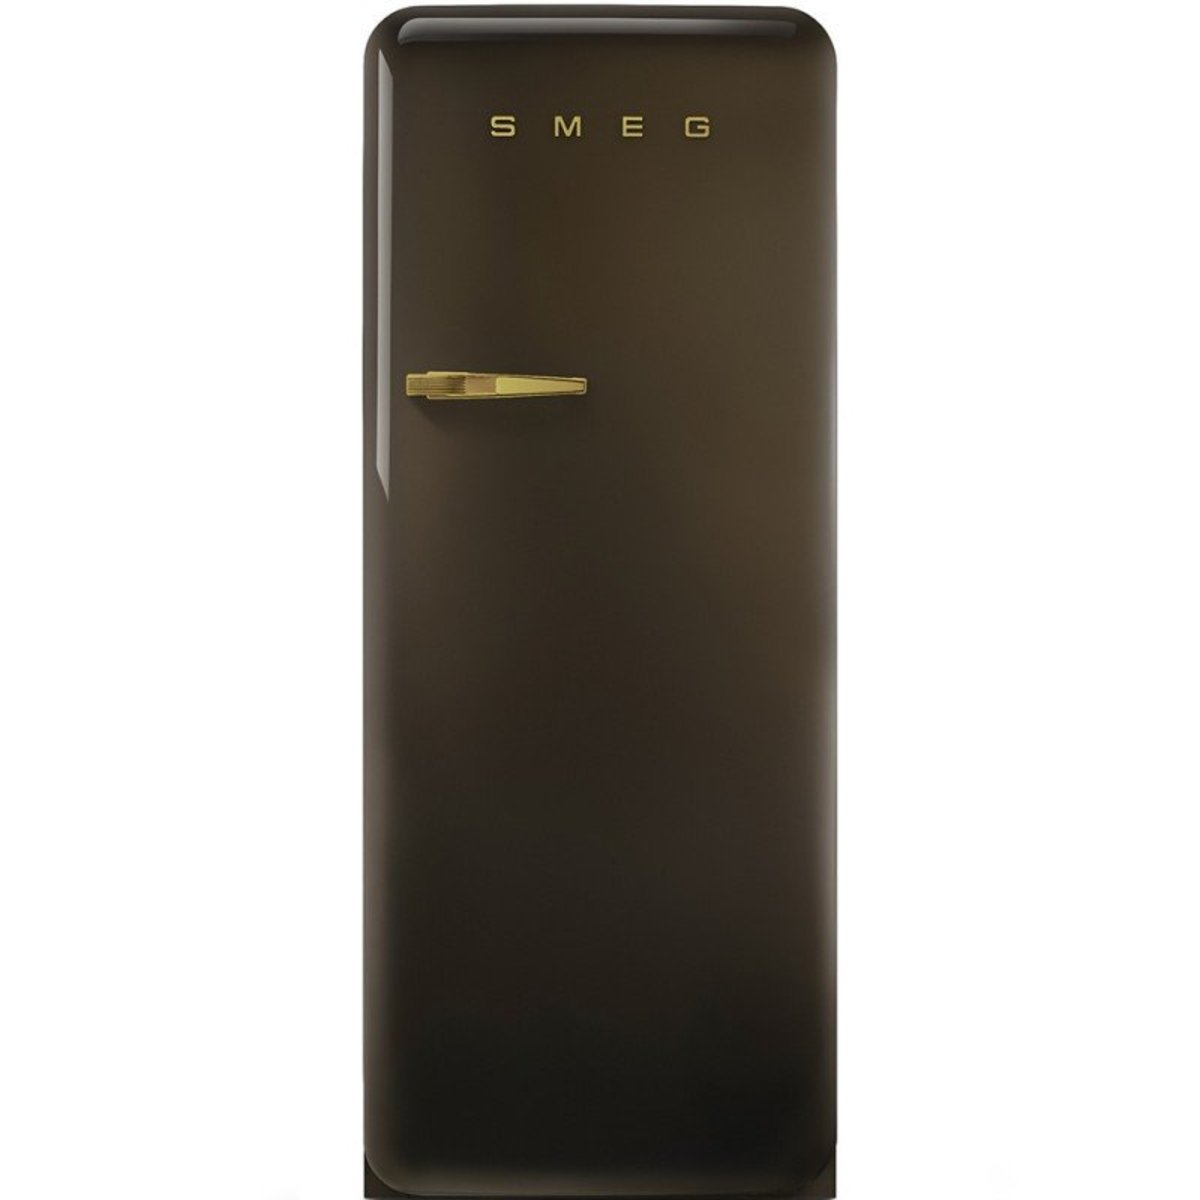 FAB28QCG1, 50's style Refrigerator with ice compartment, Chocolate, Right hand hinge [預訂]